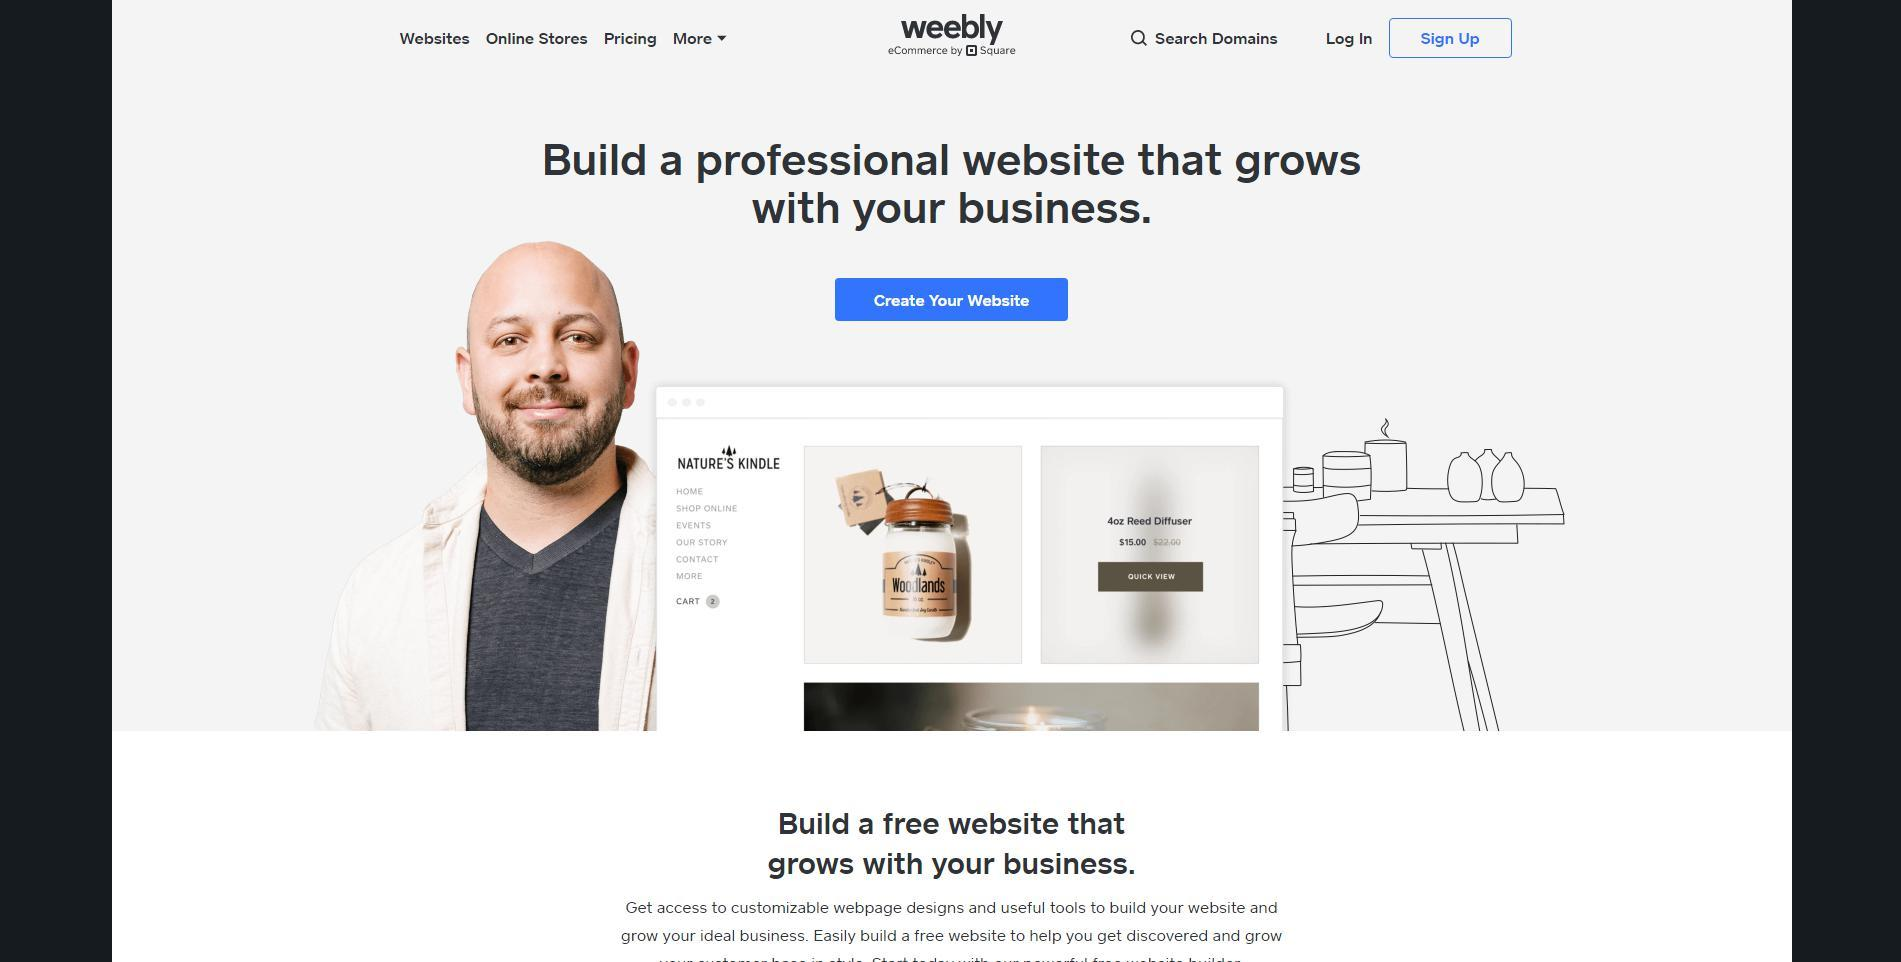 Stay on a budget? Weebly may help you to sort things out!